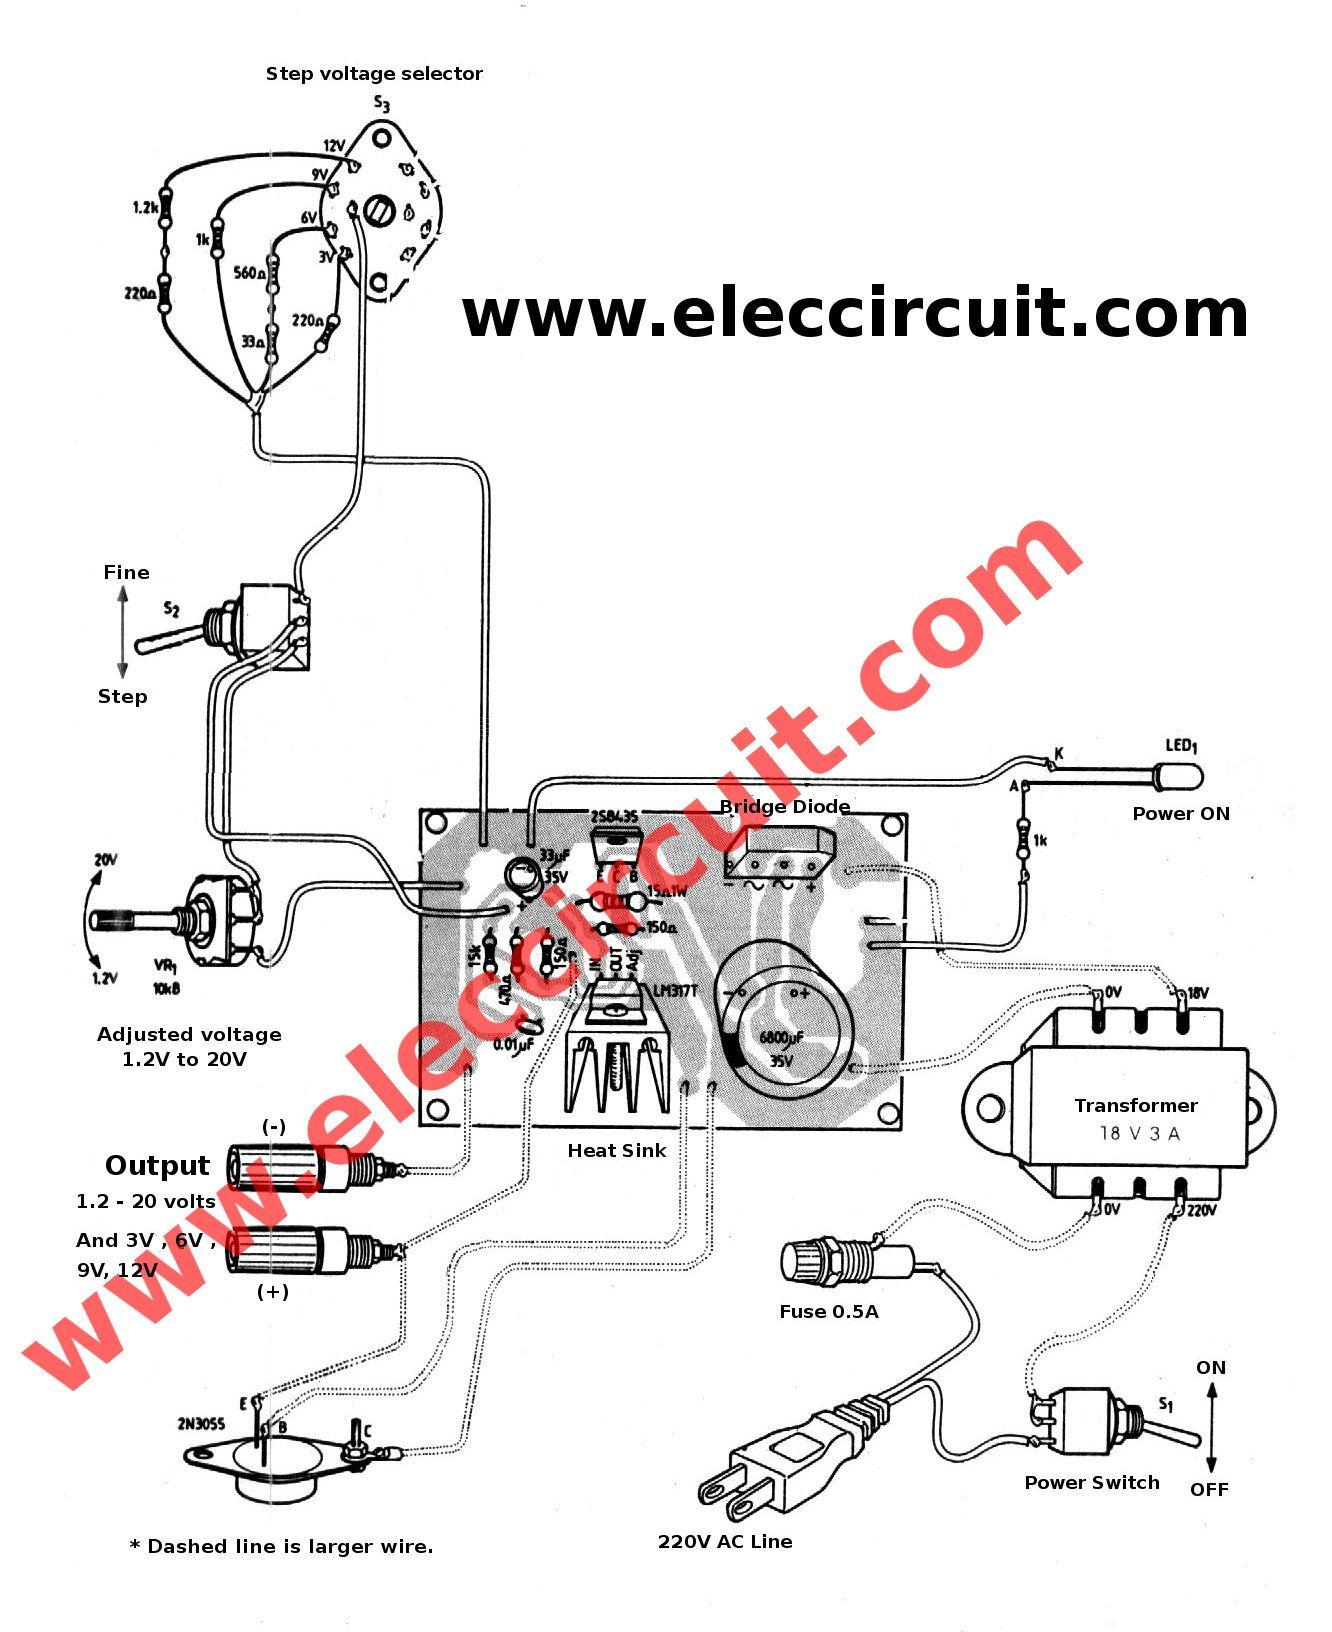 hight resolution of we recommend the lm317 adjustable voltage regulator circuit it use normally component lm317 popular dc voltage regulator and 2n3055 transistor to boost up